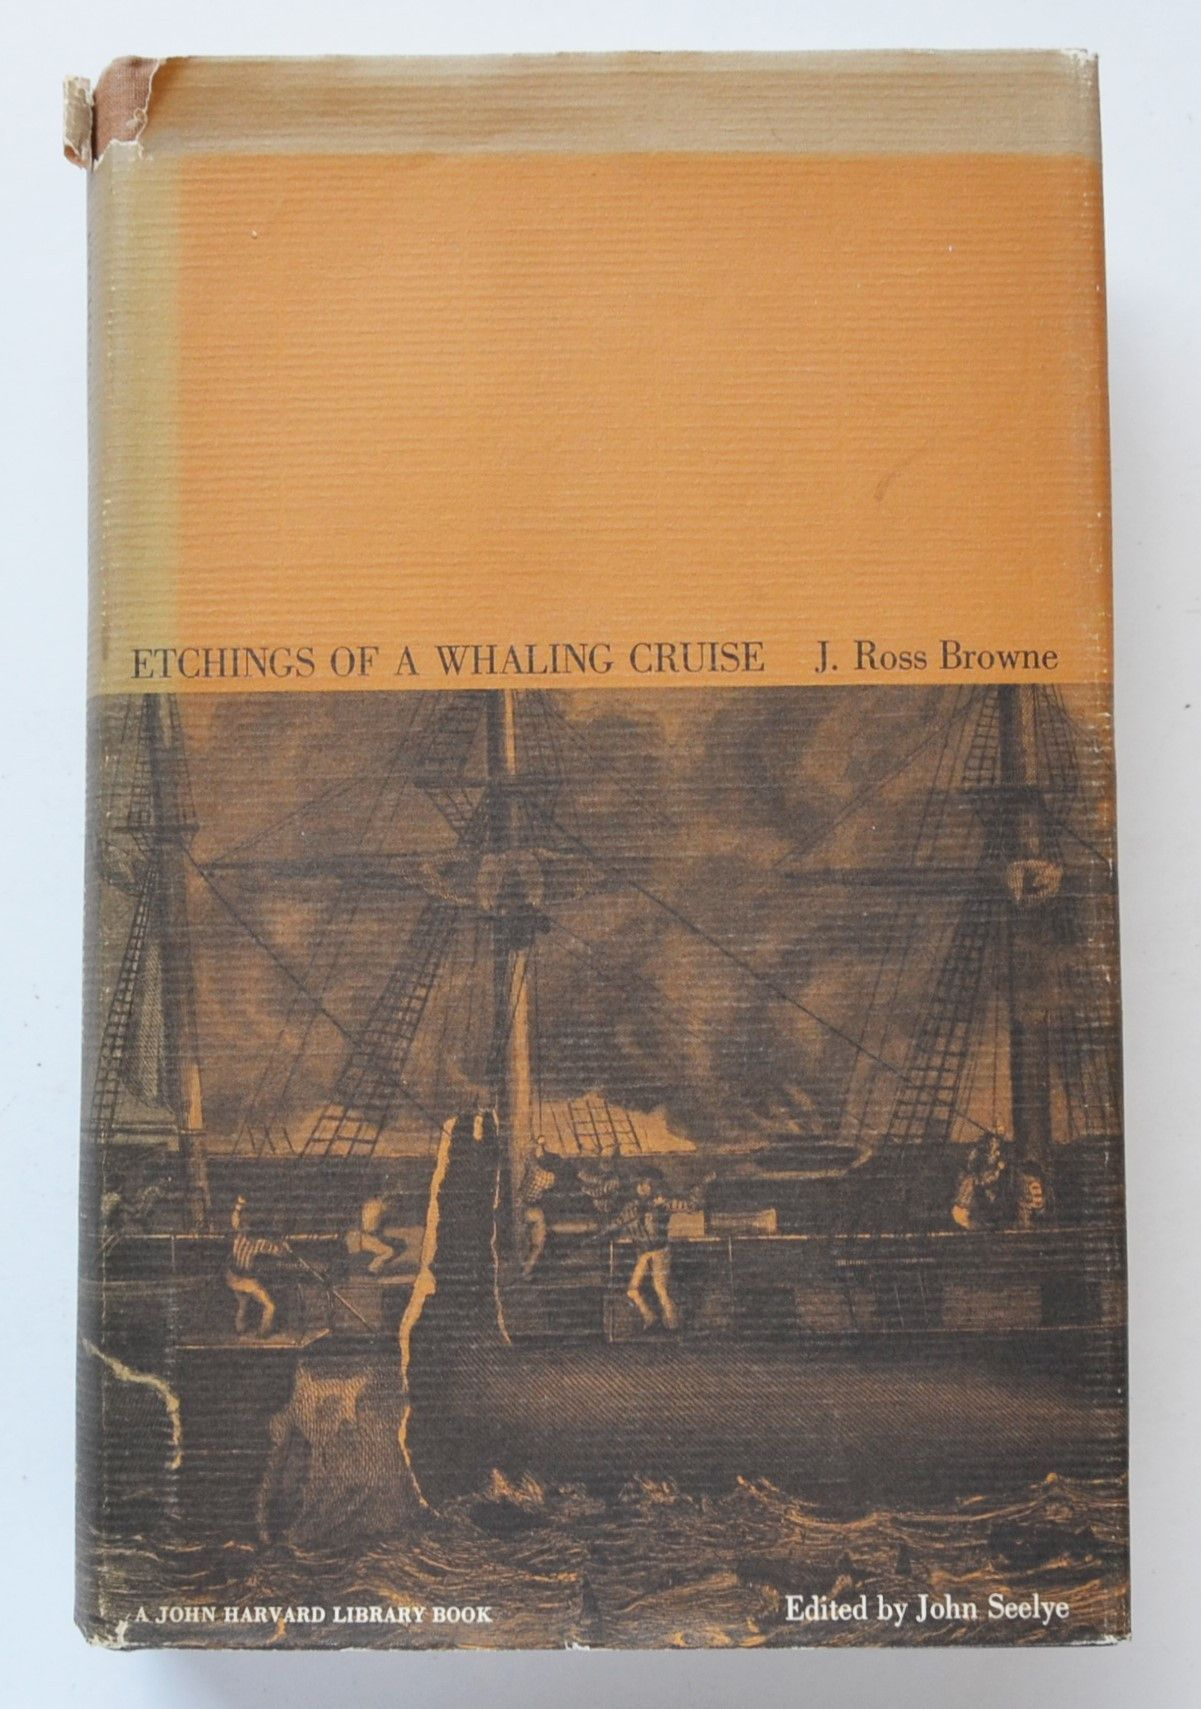 Etchings of a Whaling Cruise (The John Harvard Library) by J. Ross Browne;  Edited by John Seelye